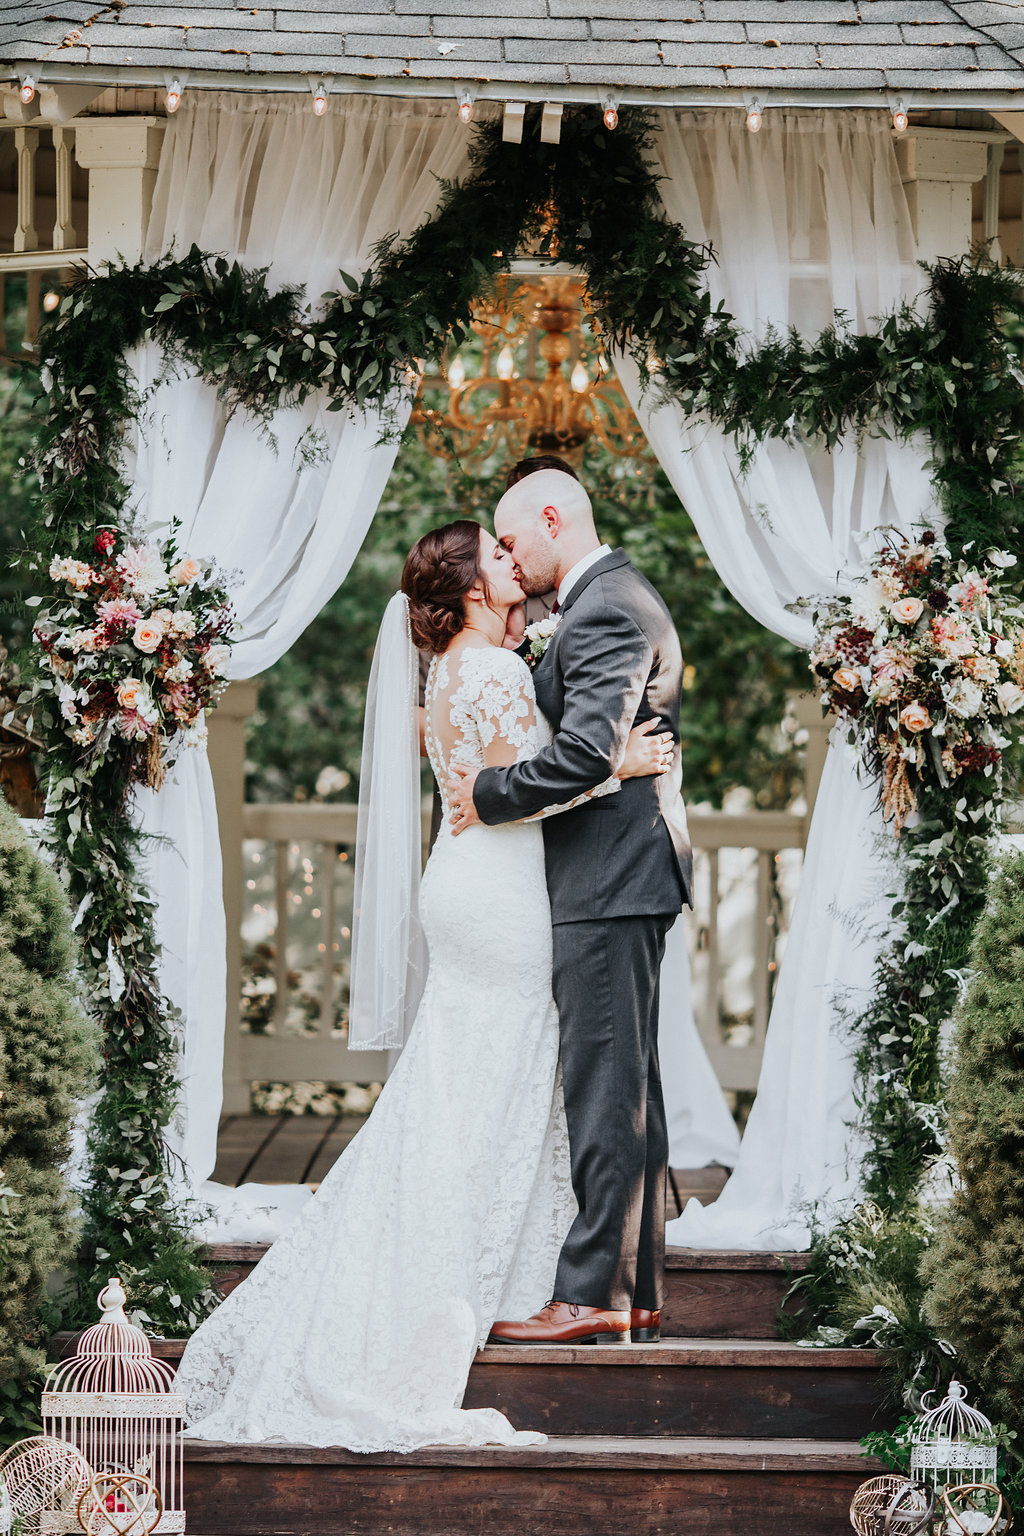 romantic ceremonies with greenery and flowers - http://ruffledblog.com/glam-autumn-wedding-at-belle-gardens